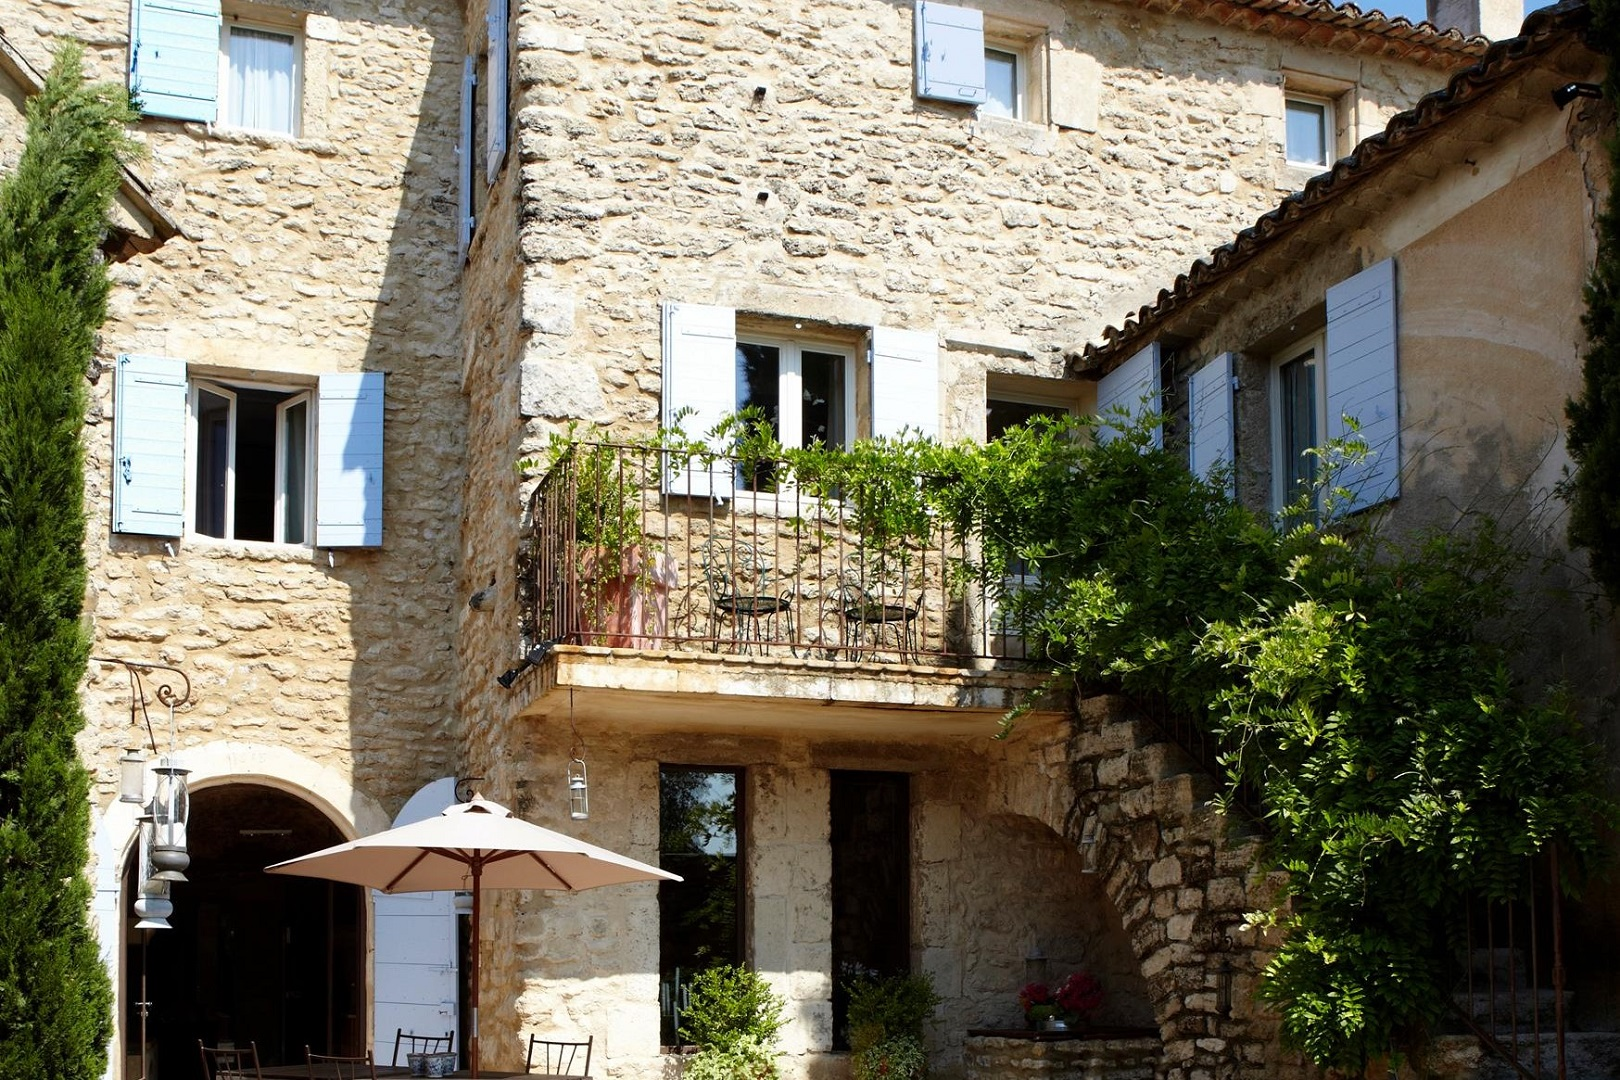 A stone building that has a bench in front of a house at Le nid de rochefort.